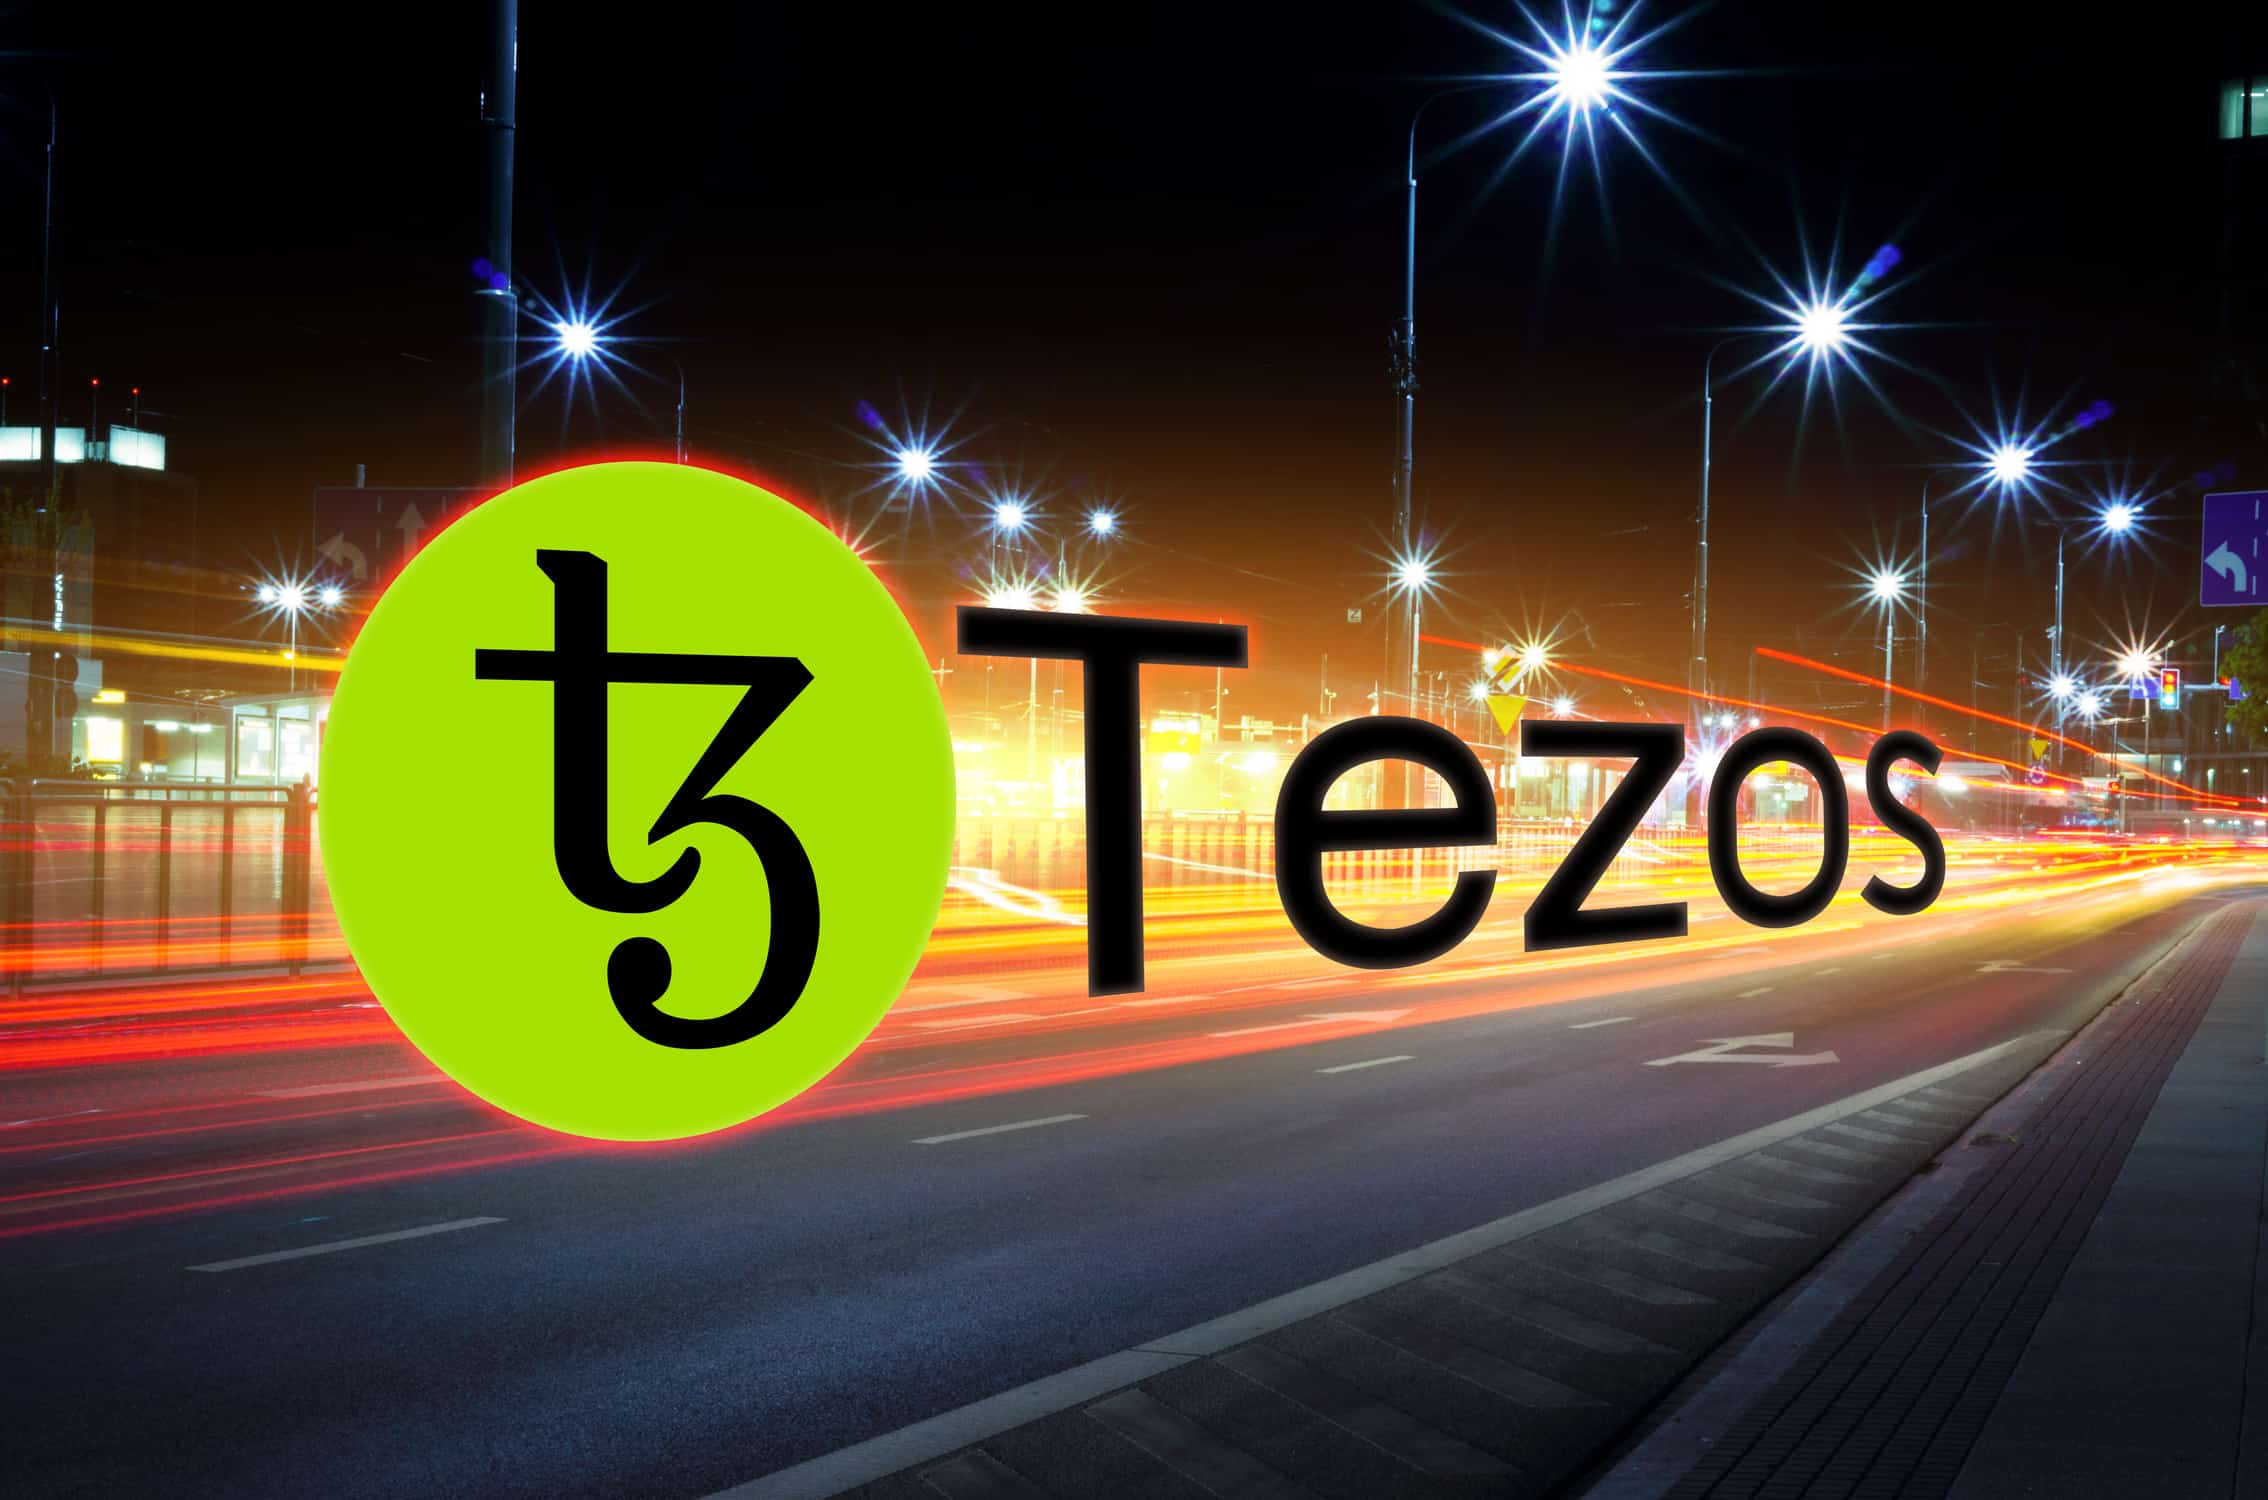 Tezos Drops By A Steep 8% Over 24 Hours - Will The Bulls Push Back Above $3.00?